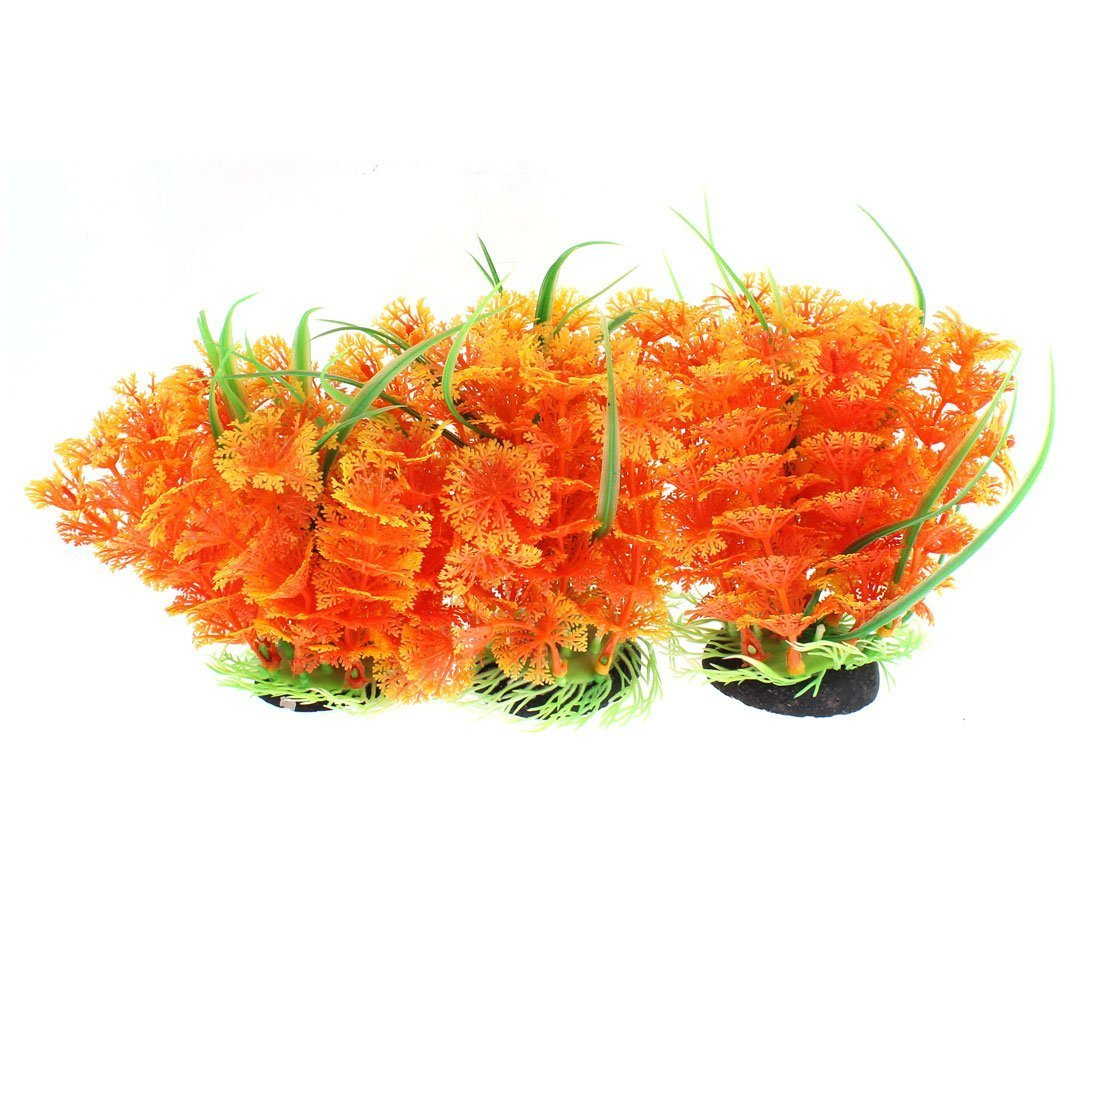 1Pc Plastic Fish Bowl Artificial Aquascaping Water Plant Grass Flower